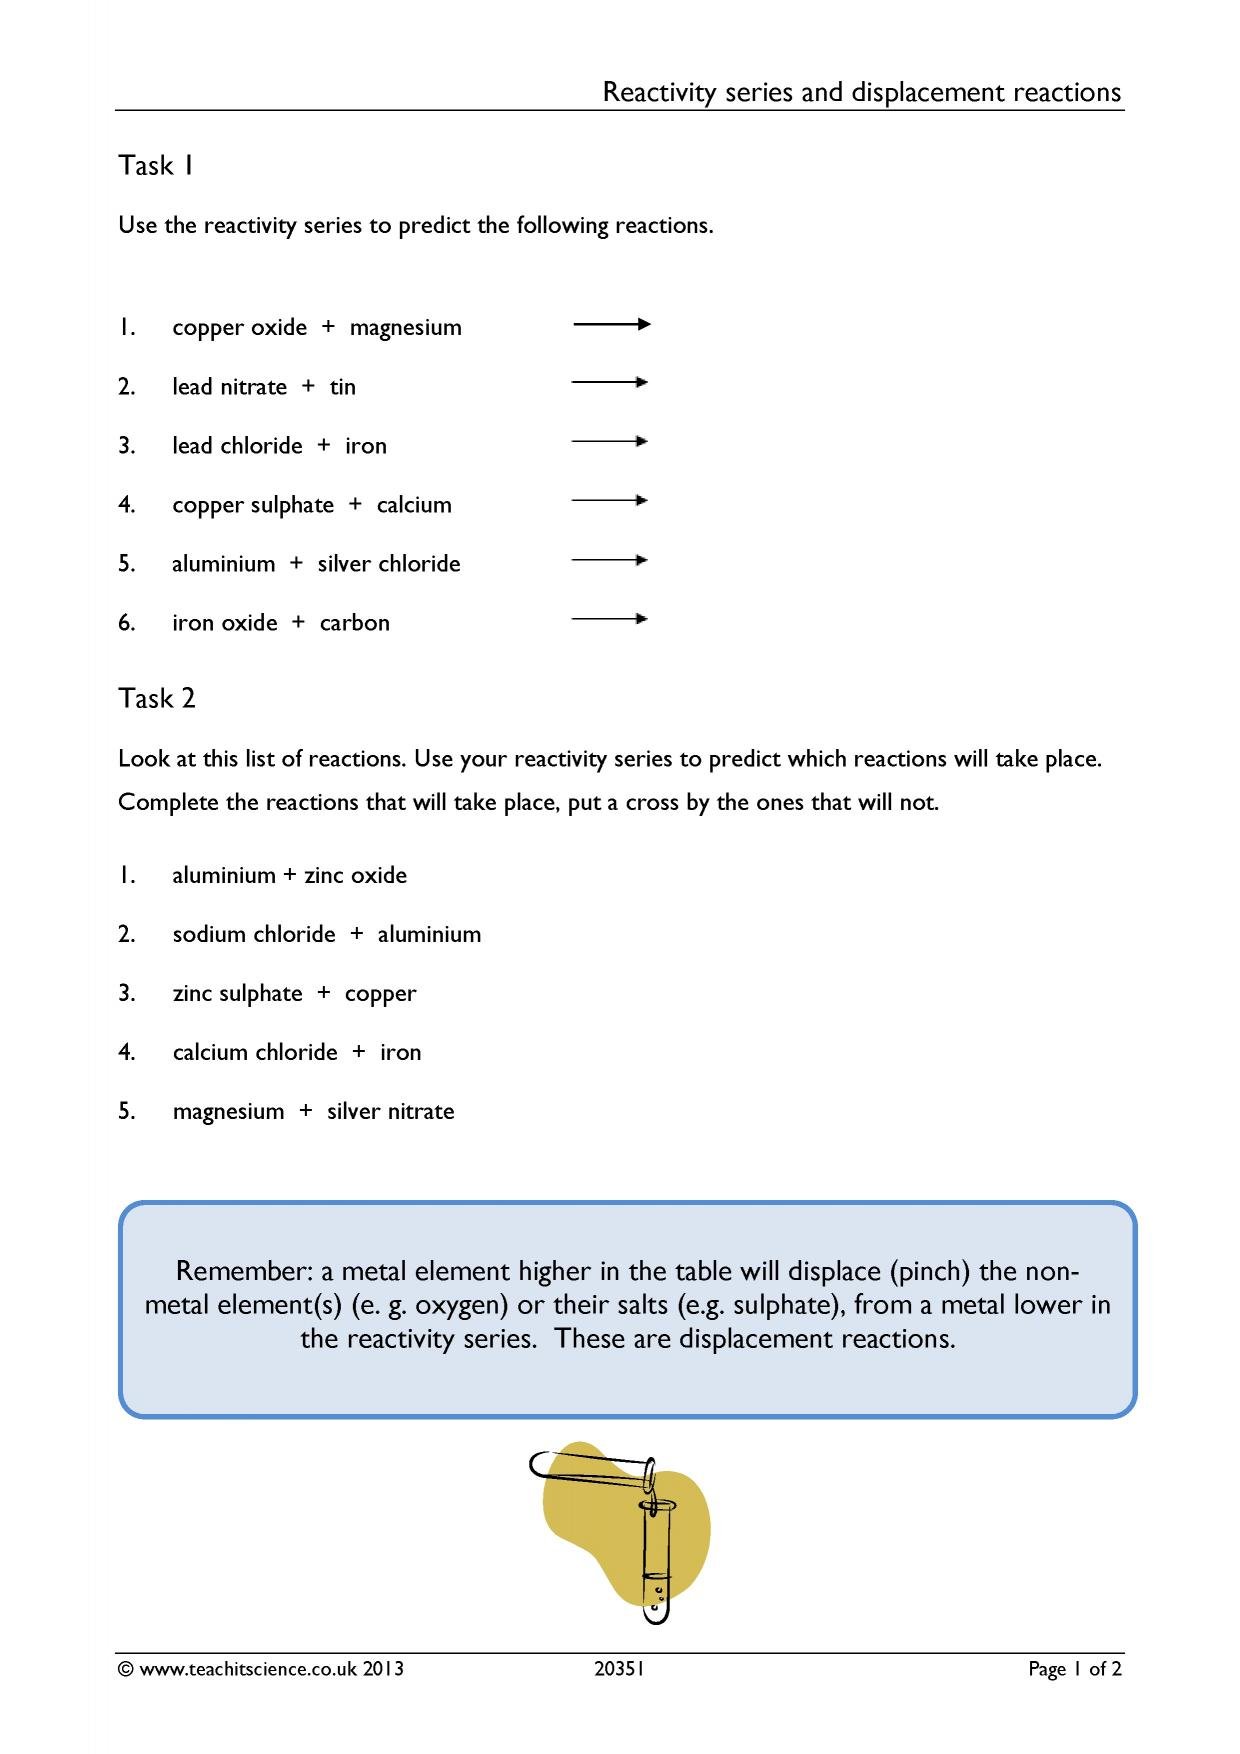 worksheet Chemical Reactivity Worksheet reactivity series and displacement reactions patterns of chemical energetics